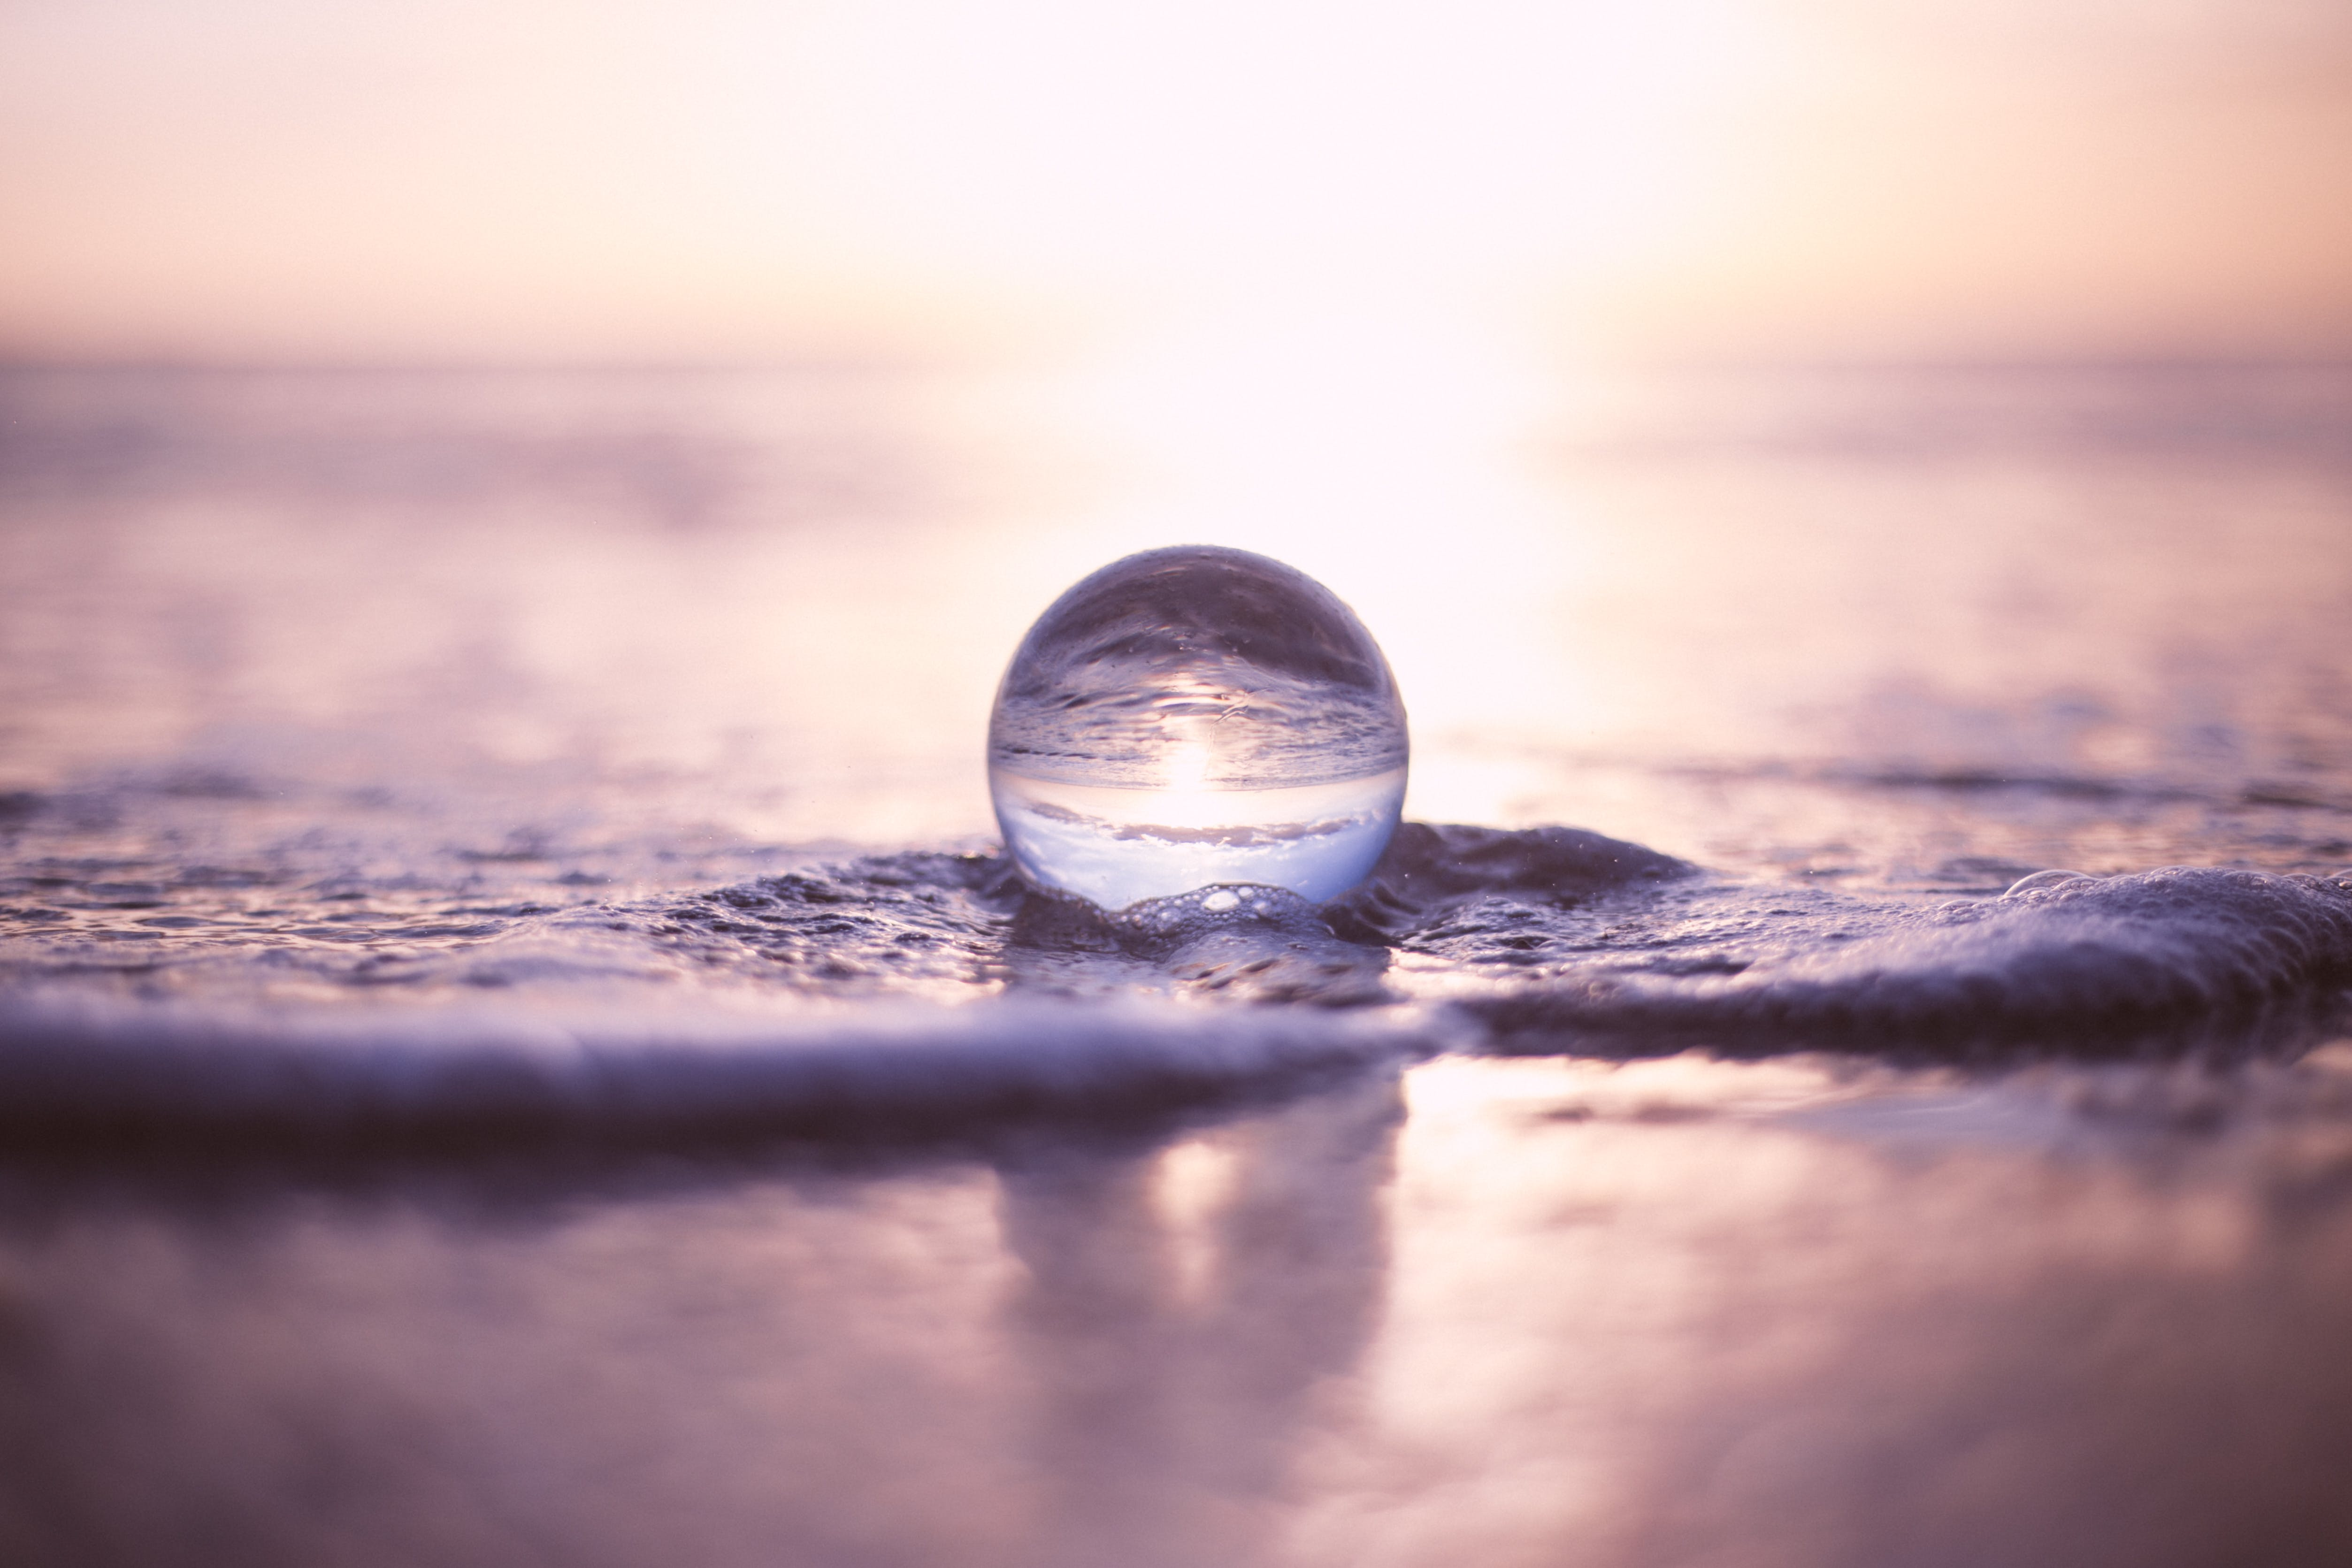 Tilt Shift Lens Photography of Water Droplet